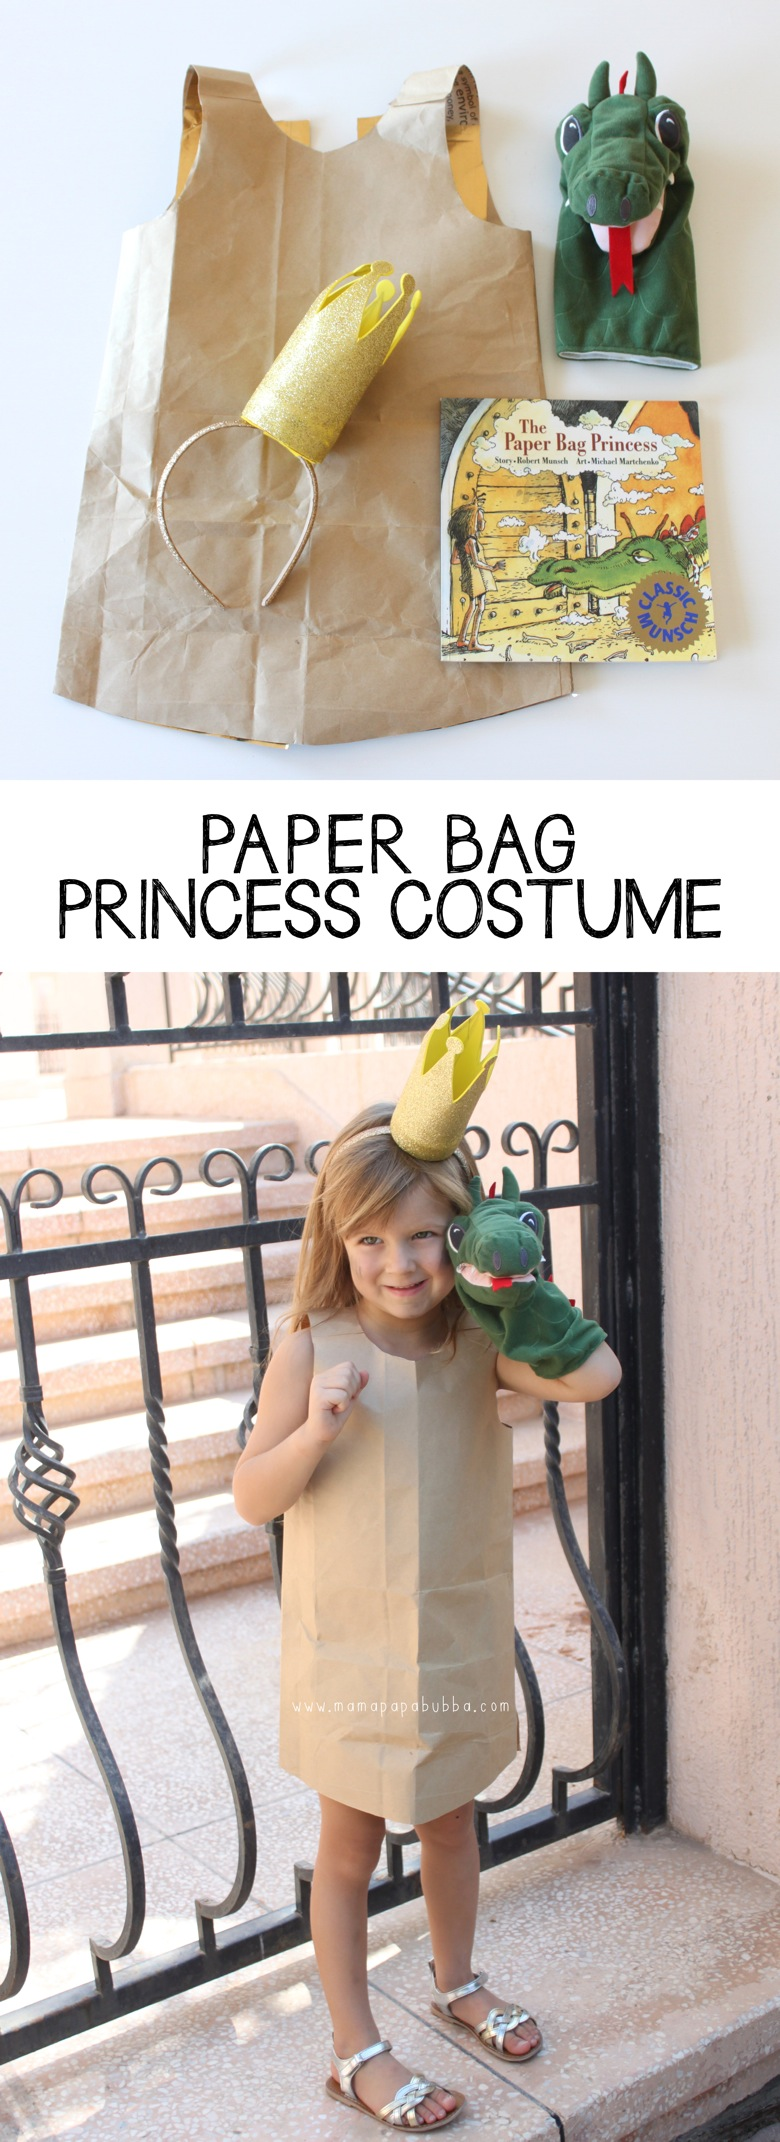 Paper Bag Princess Costume | Mama Papa Bubba